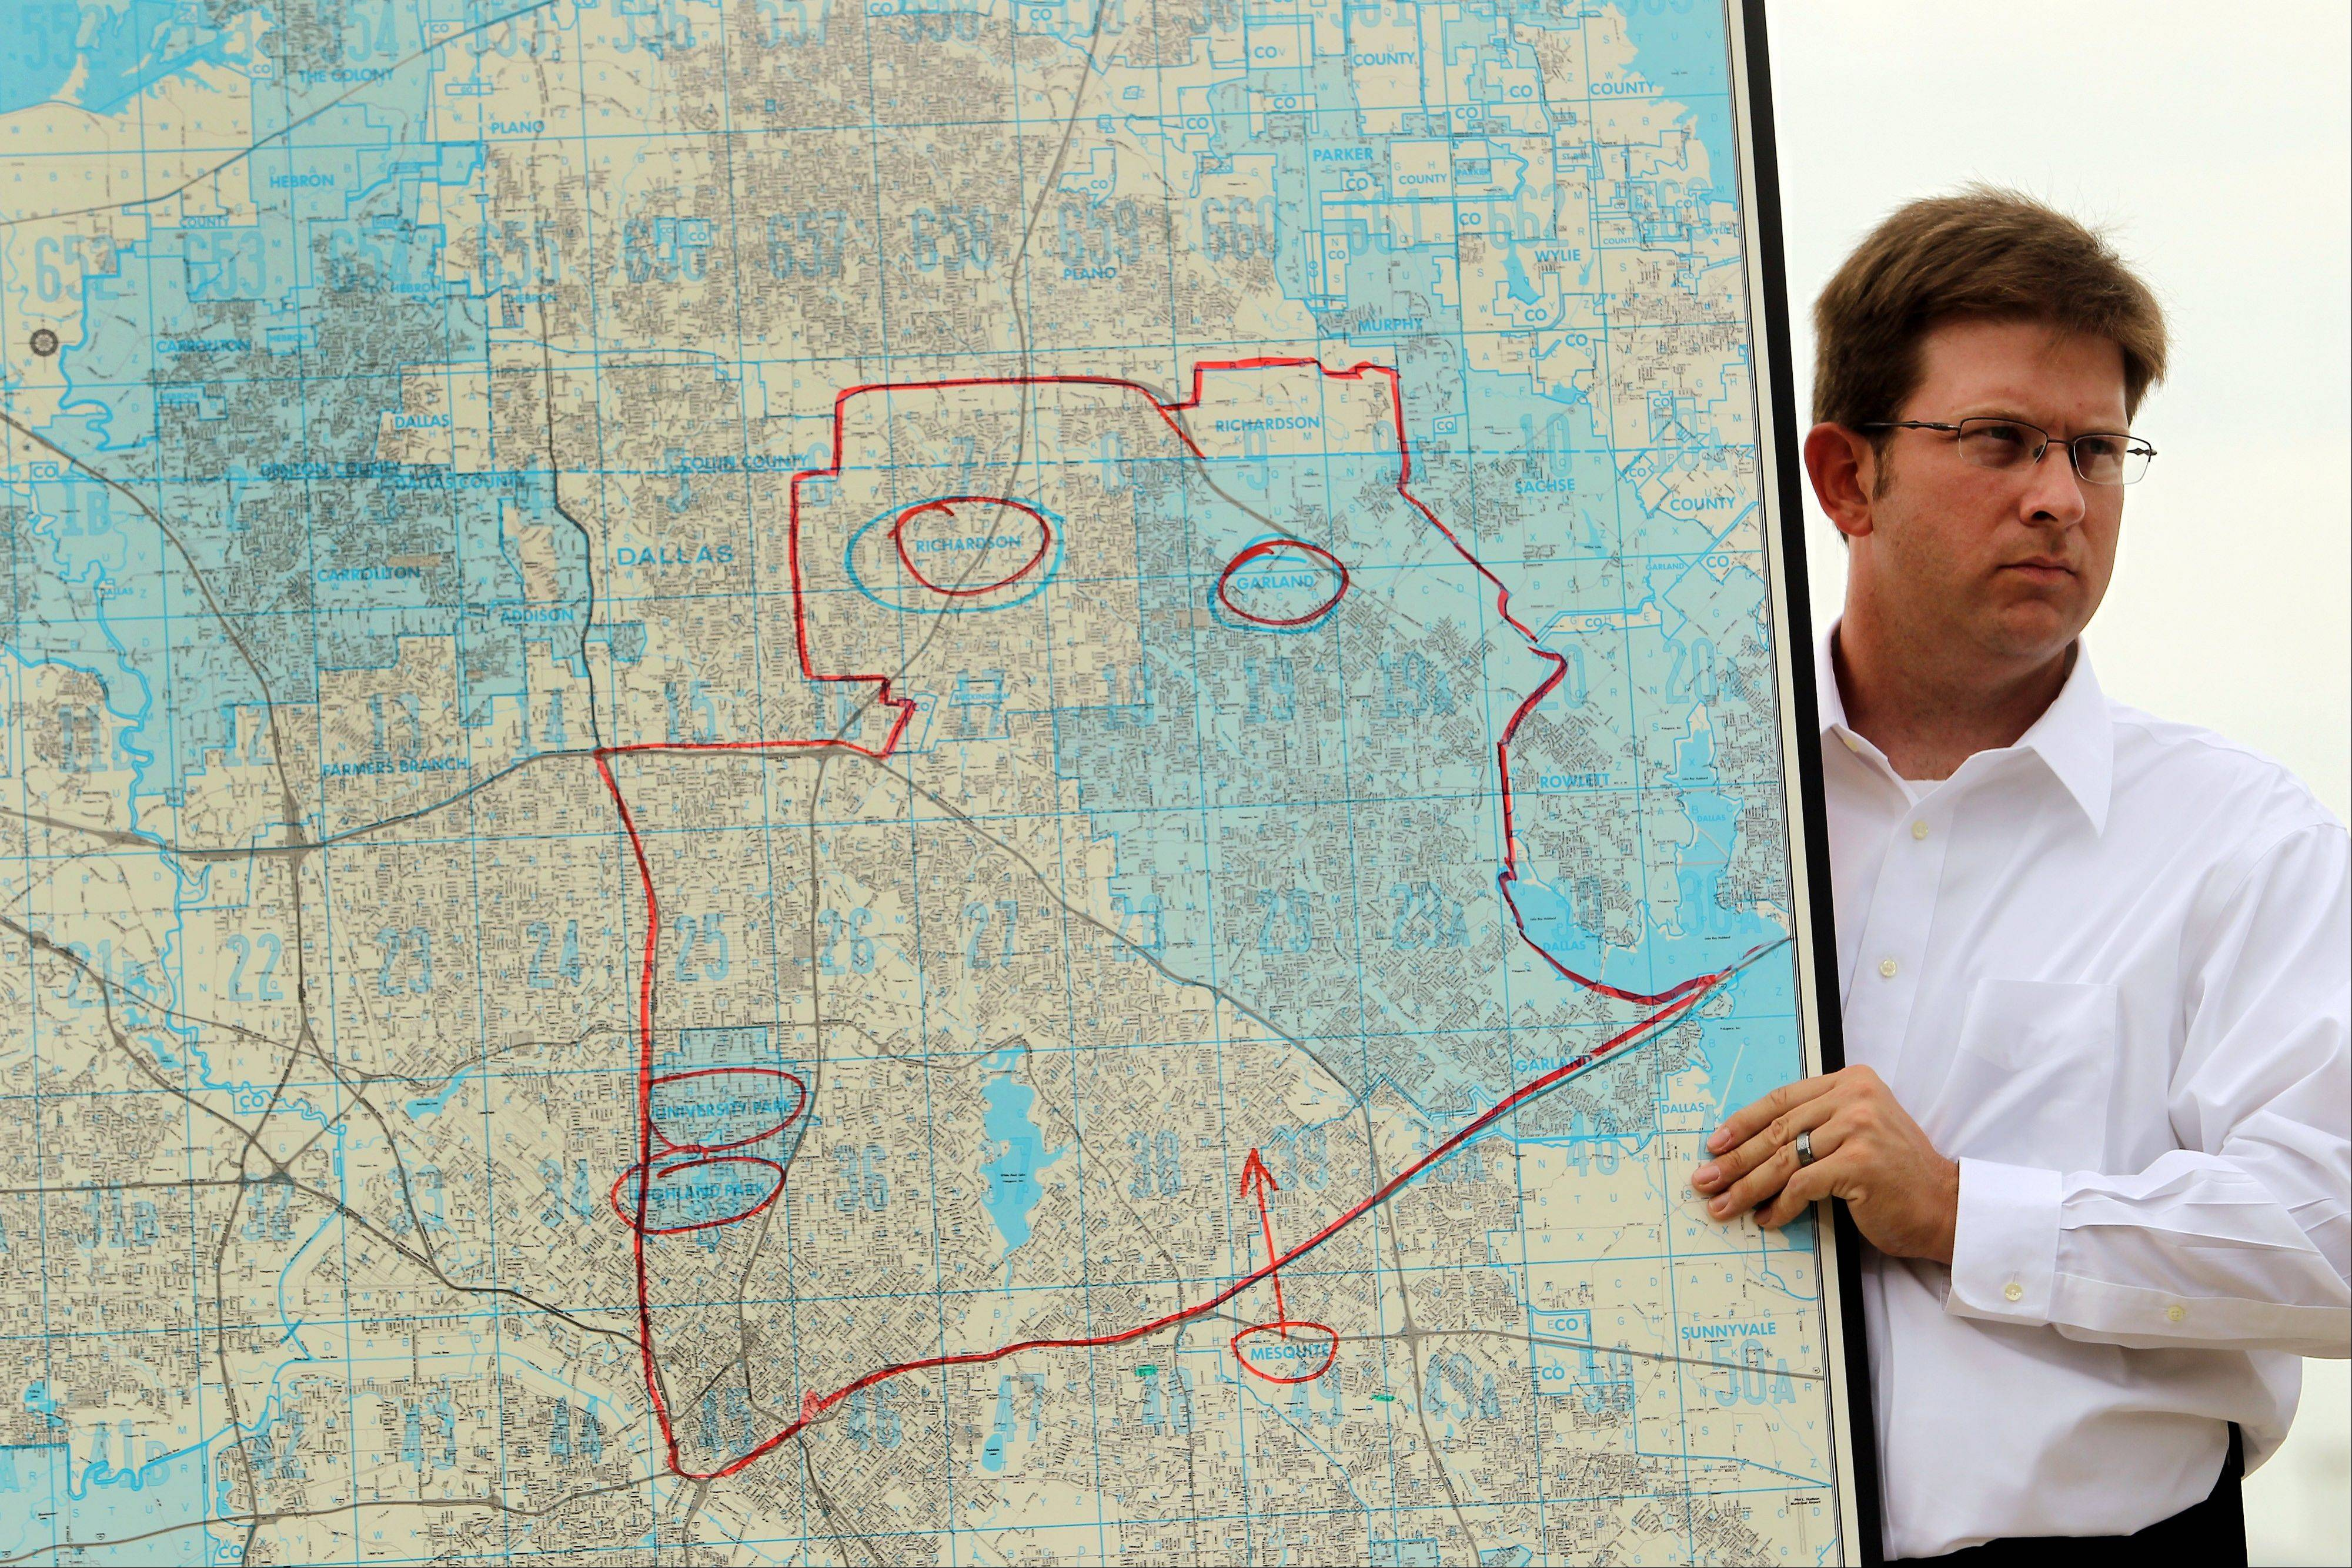 Bryant Sivess, operations manager at Dallas Executive Airport, helps hold up a map of Dallas County that highlights the areas that were planned to be sprayed by air Thursday night to curb the spread of mosquitoes, during a news conference Thursday afternoon, Aug. 16, 2012, at the Dallas airport. For the first time in more than 45 years, the city and county dropped insecticide from the air to combat the nation's worst outbreak of West Nile virus, which has killed 10 people and caused at least 200 others to fall ill.